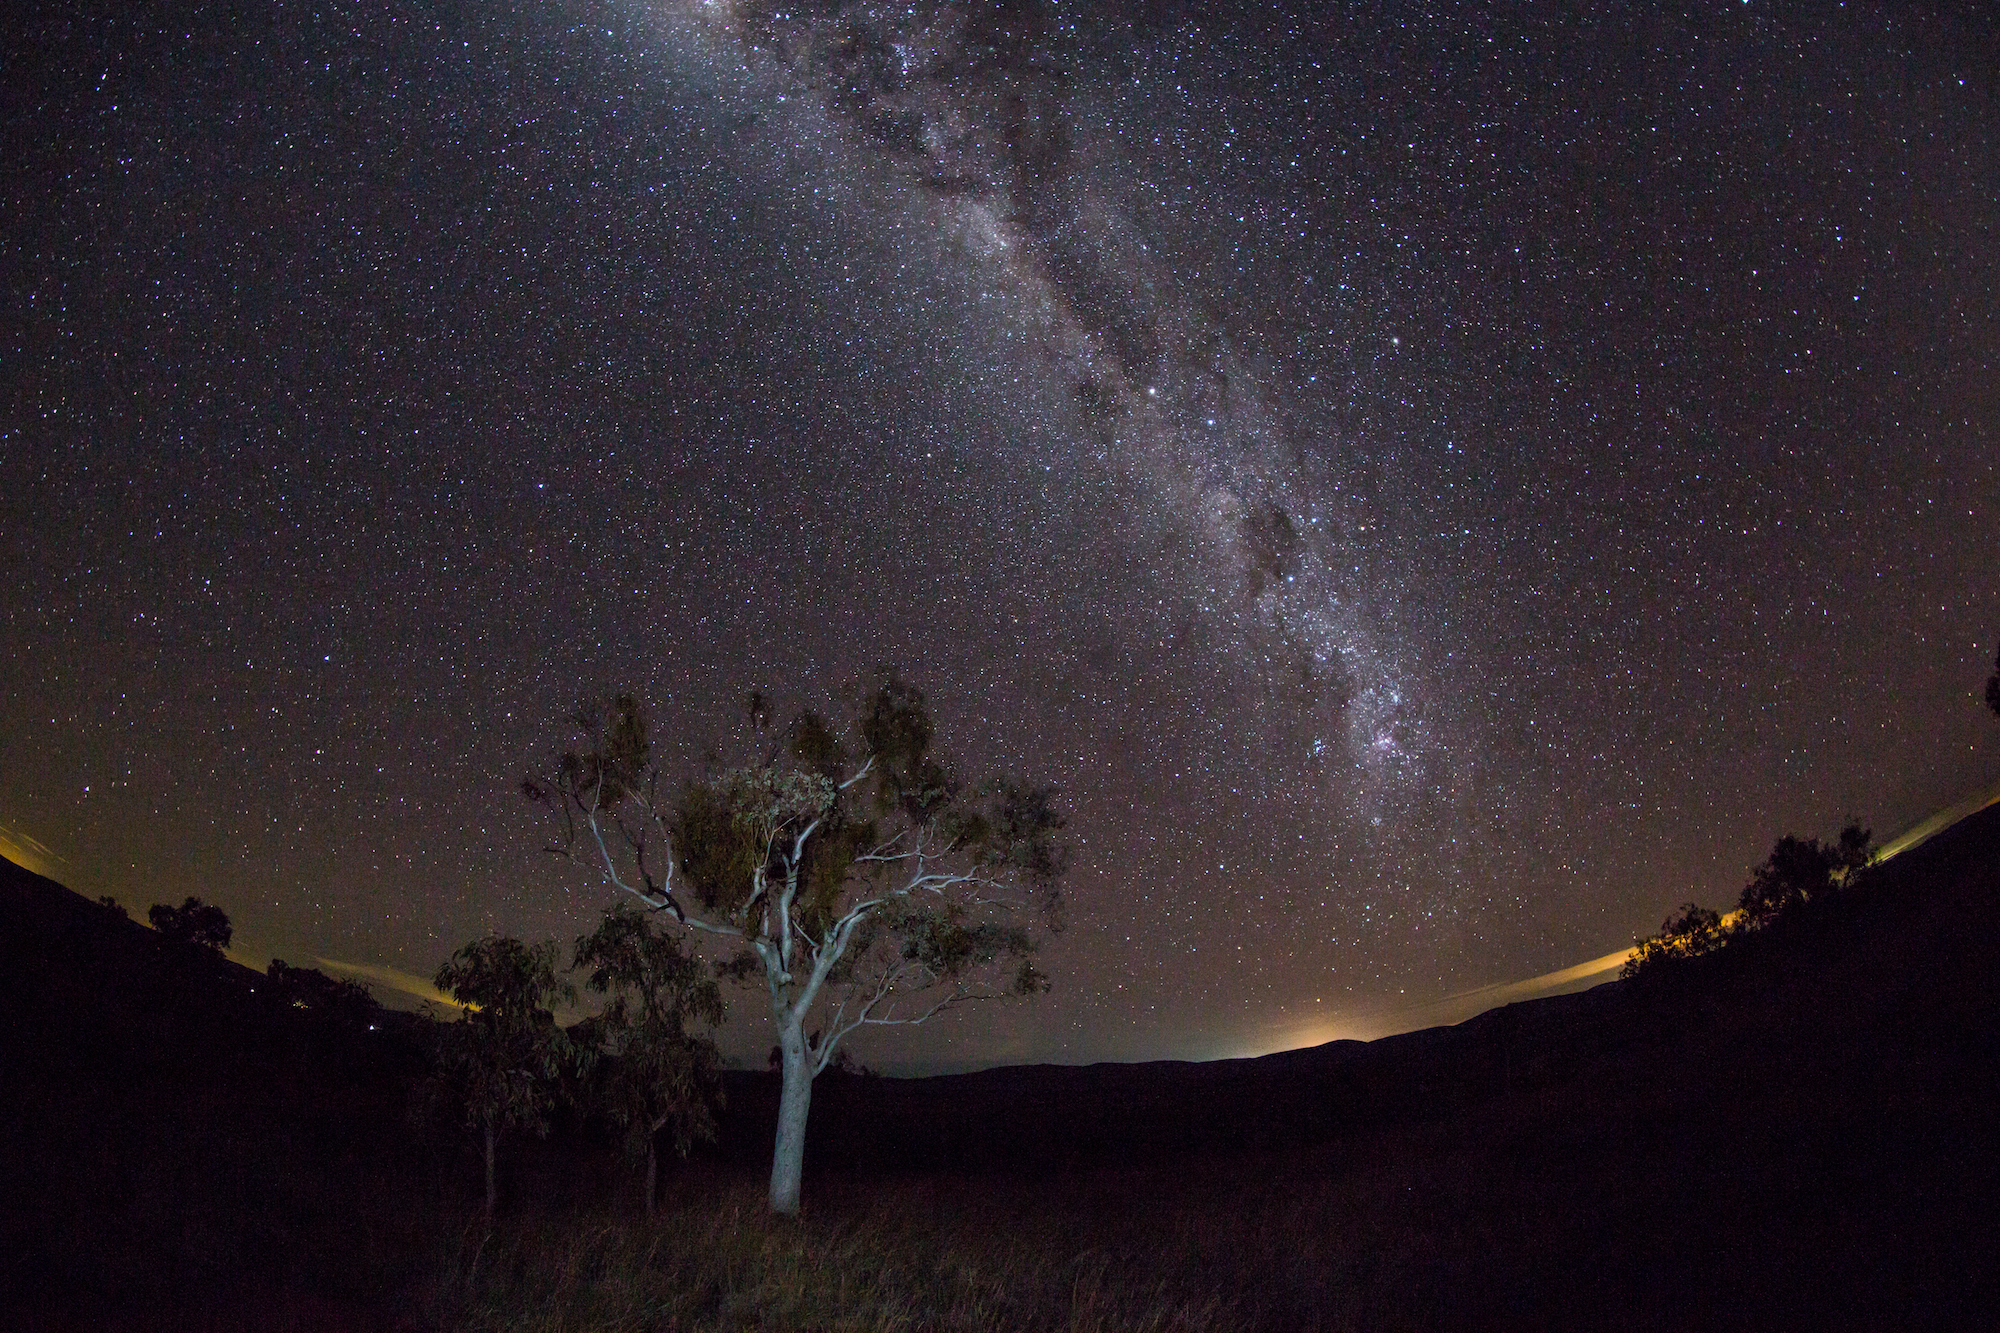 A snappy gum tree in the center of the photo. Above, a night sky full of stars